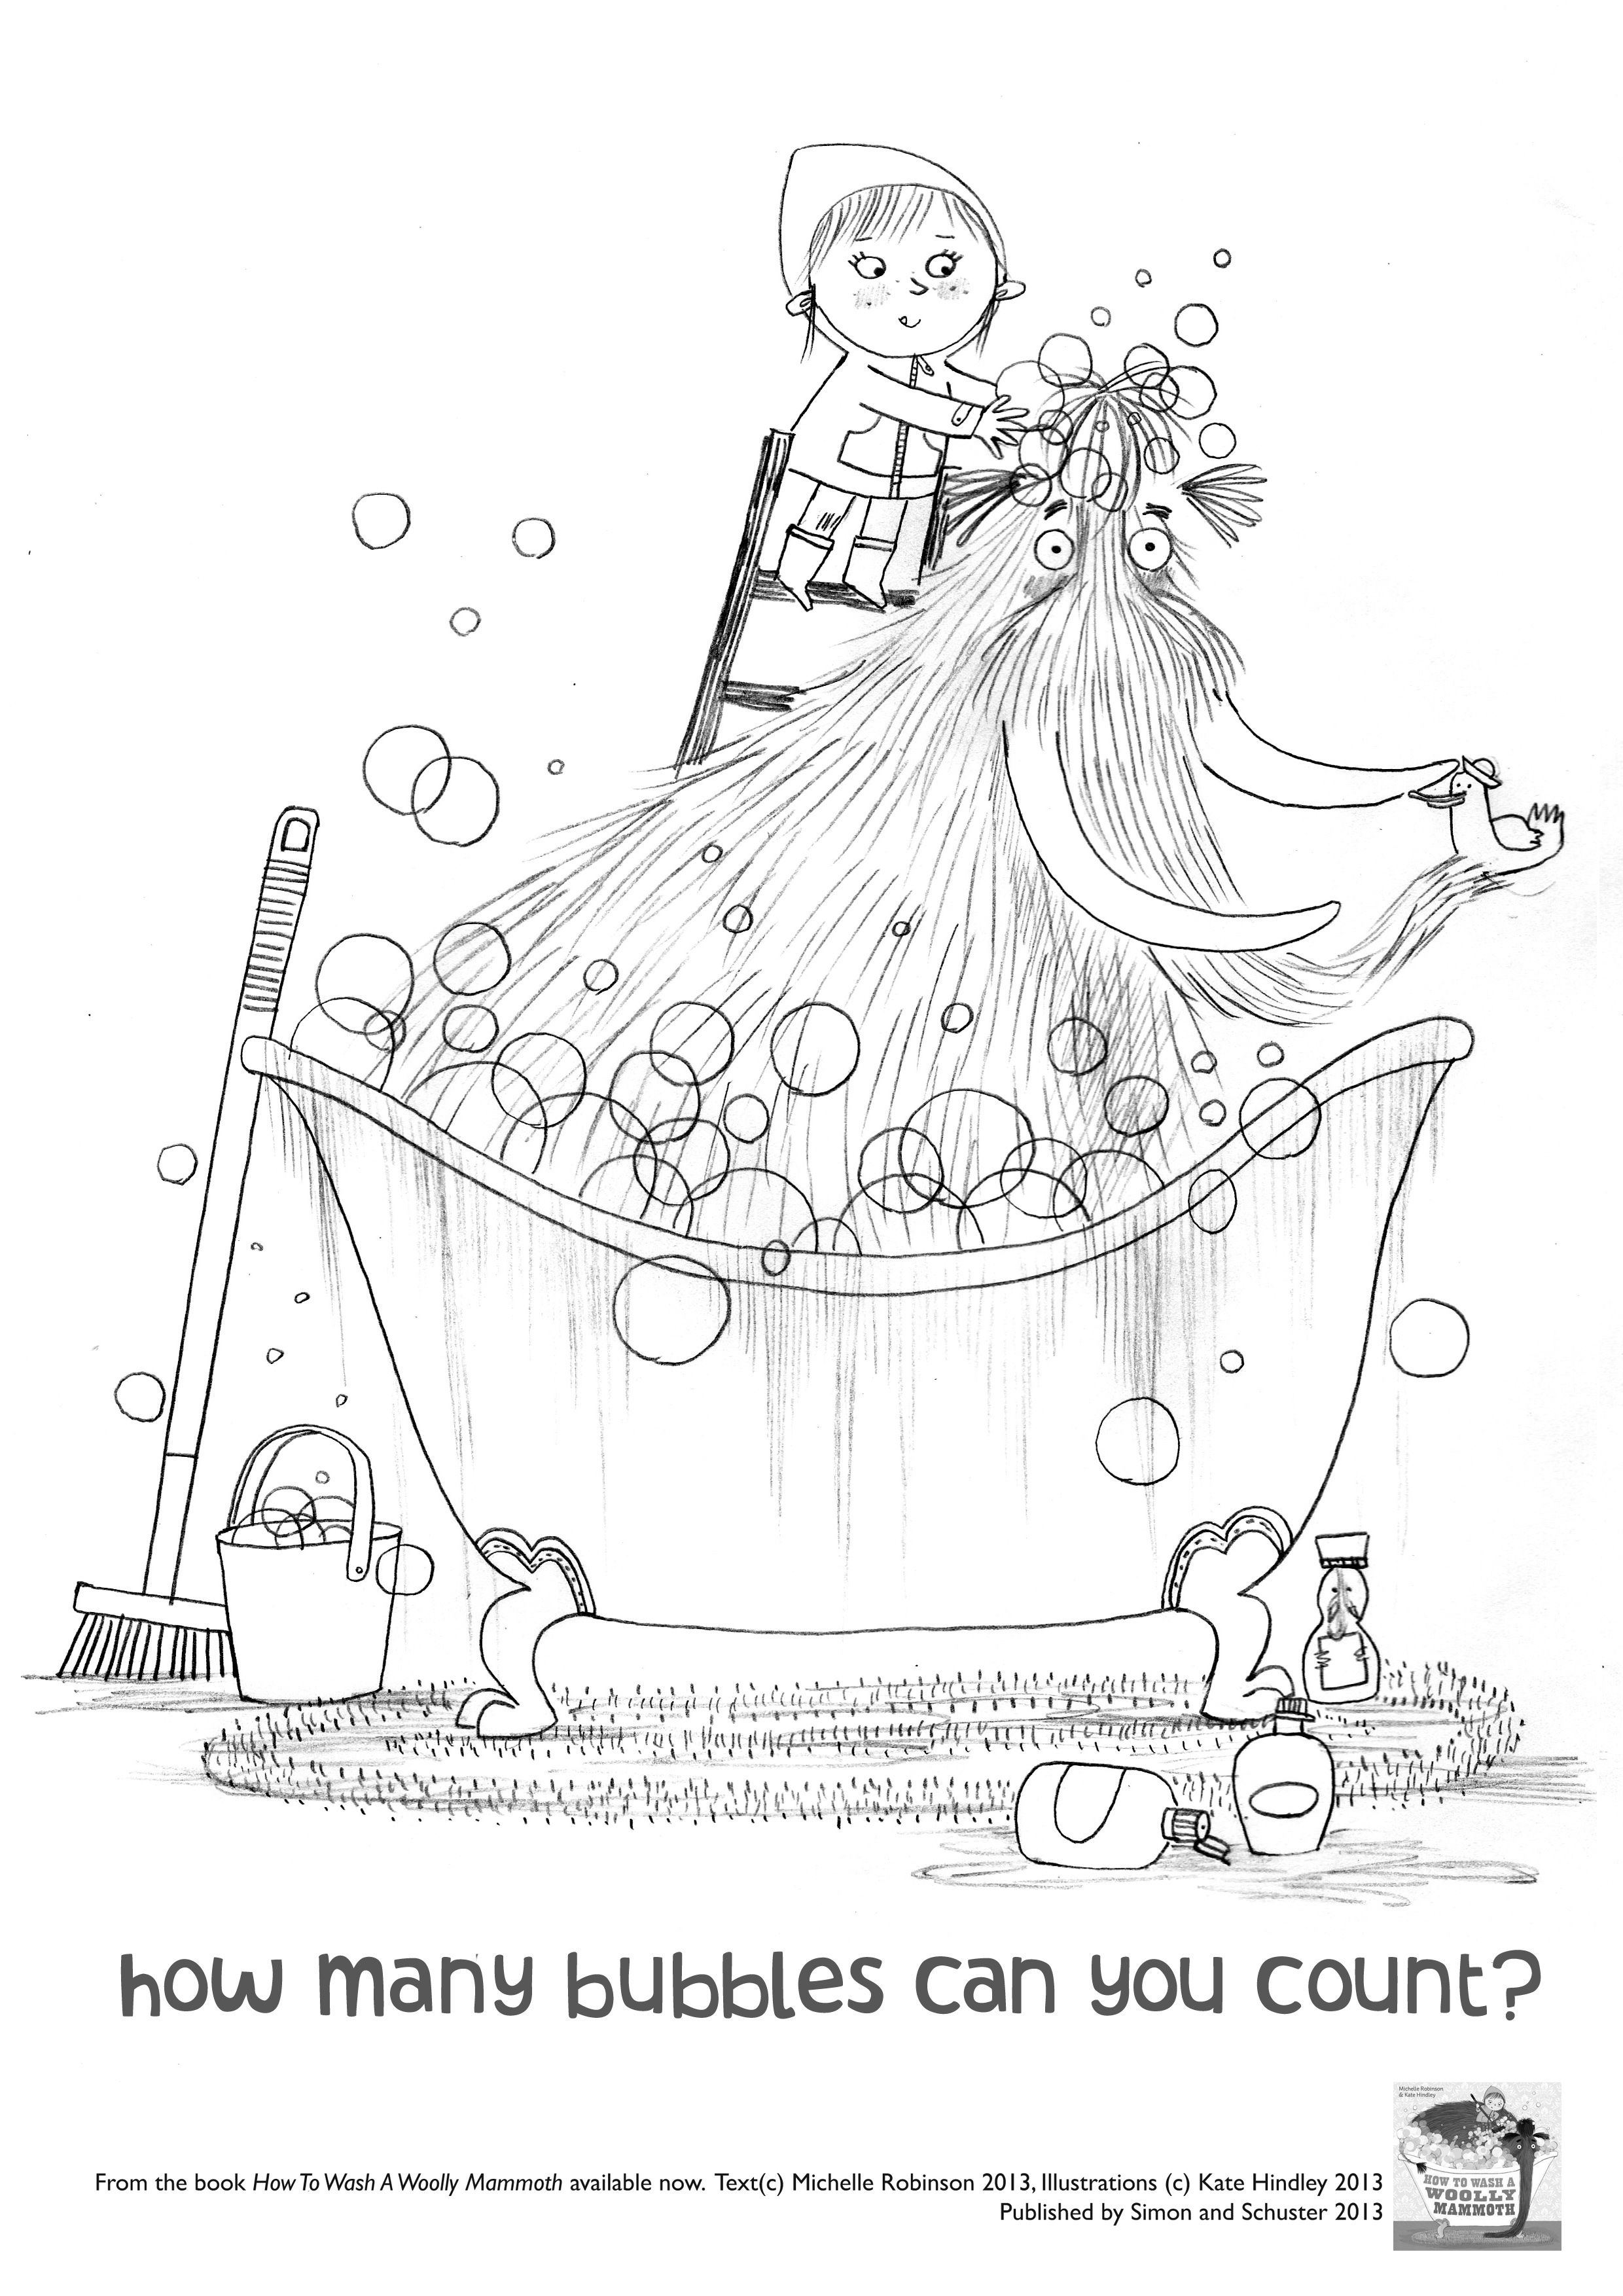 Bubble trouble! From the book HOW TO WASH A WOOLLY MAMMOTH